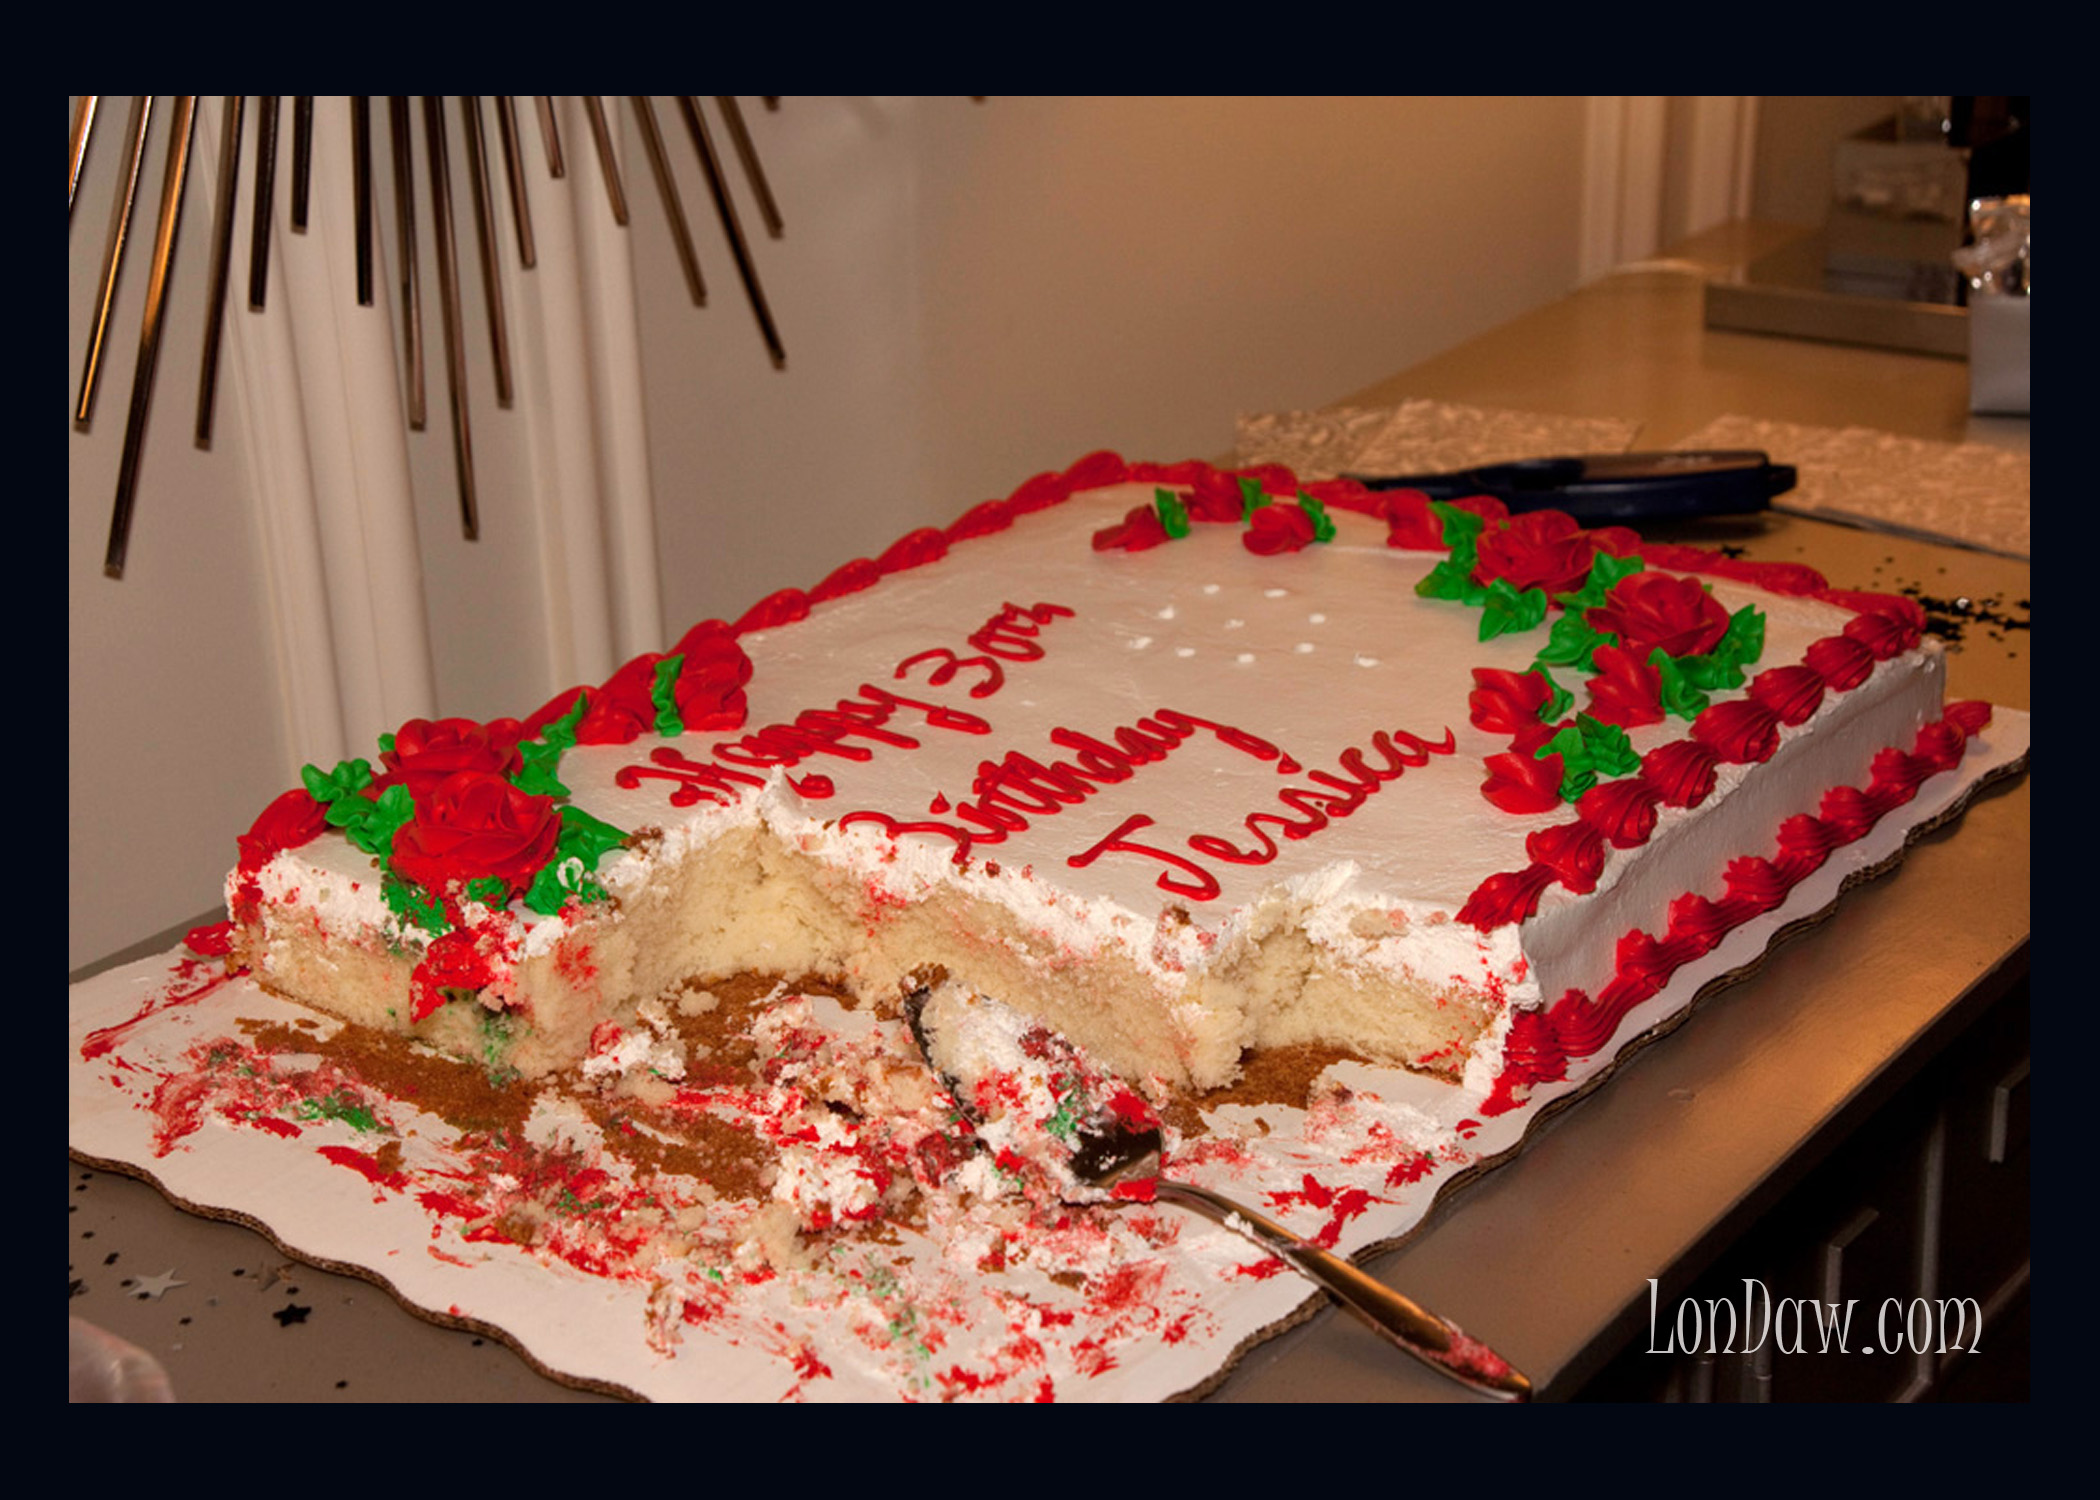 Images Of Eaten Birthday Cake : Everyone loves a beautiful cake. Half eaten cakes as art ...